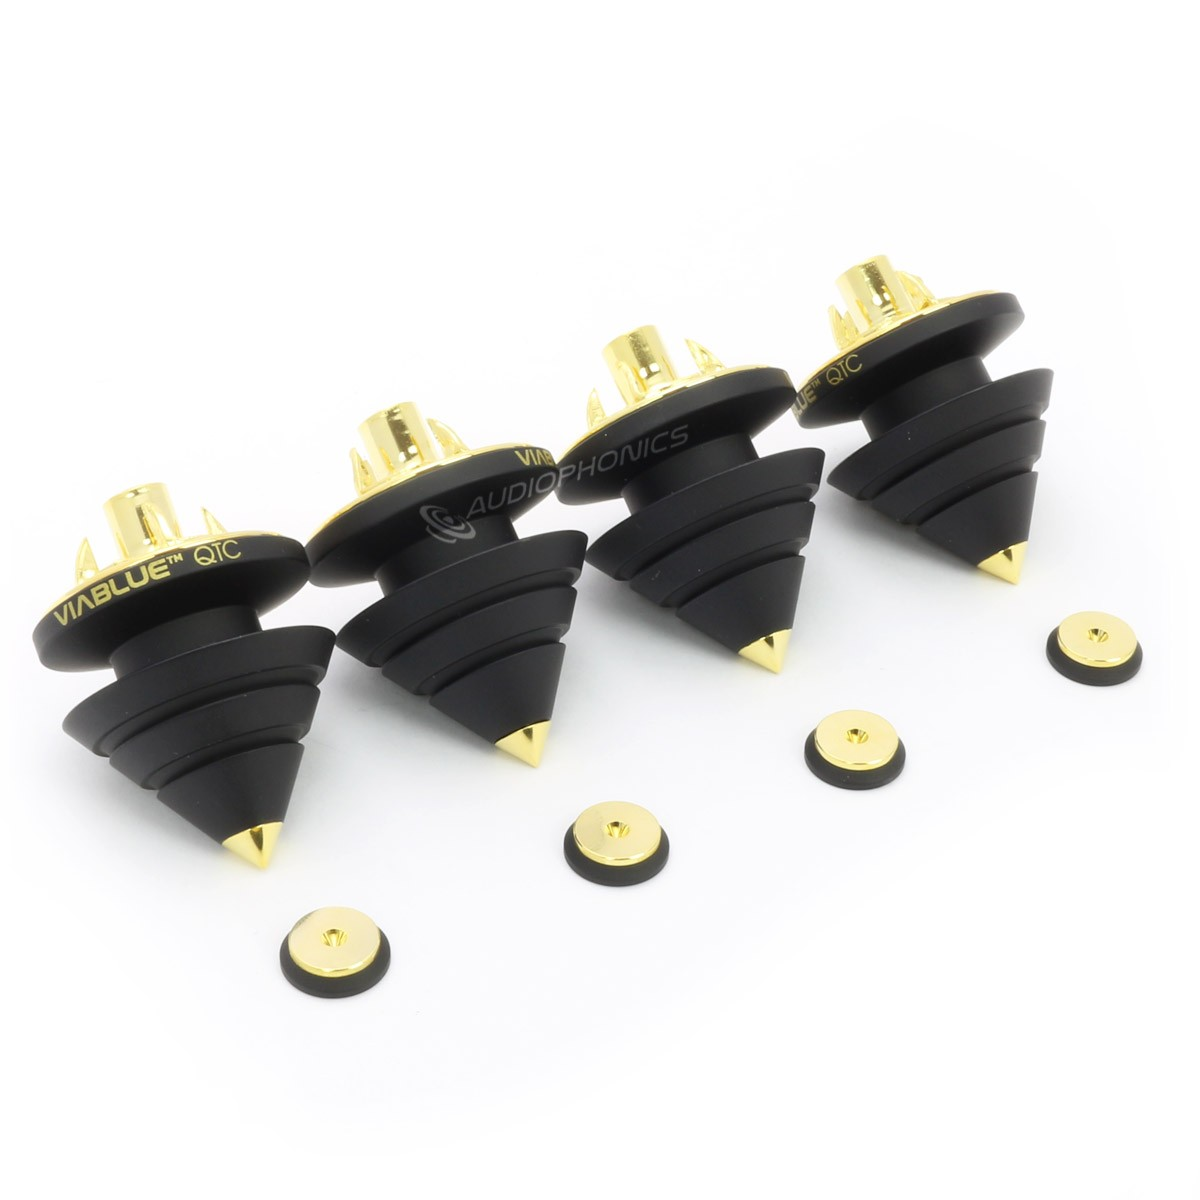 VIABLUE QTC BLACK Spikes Black (Set x4)